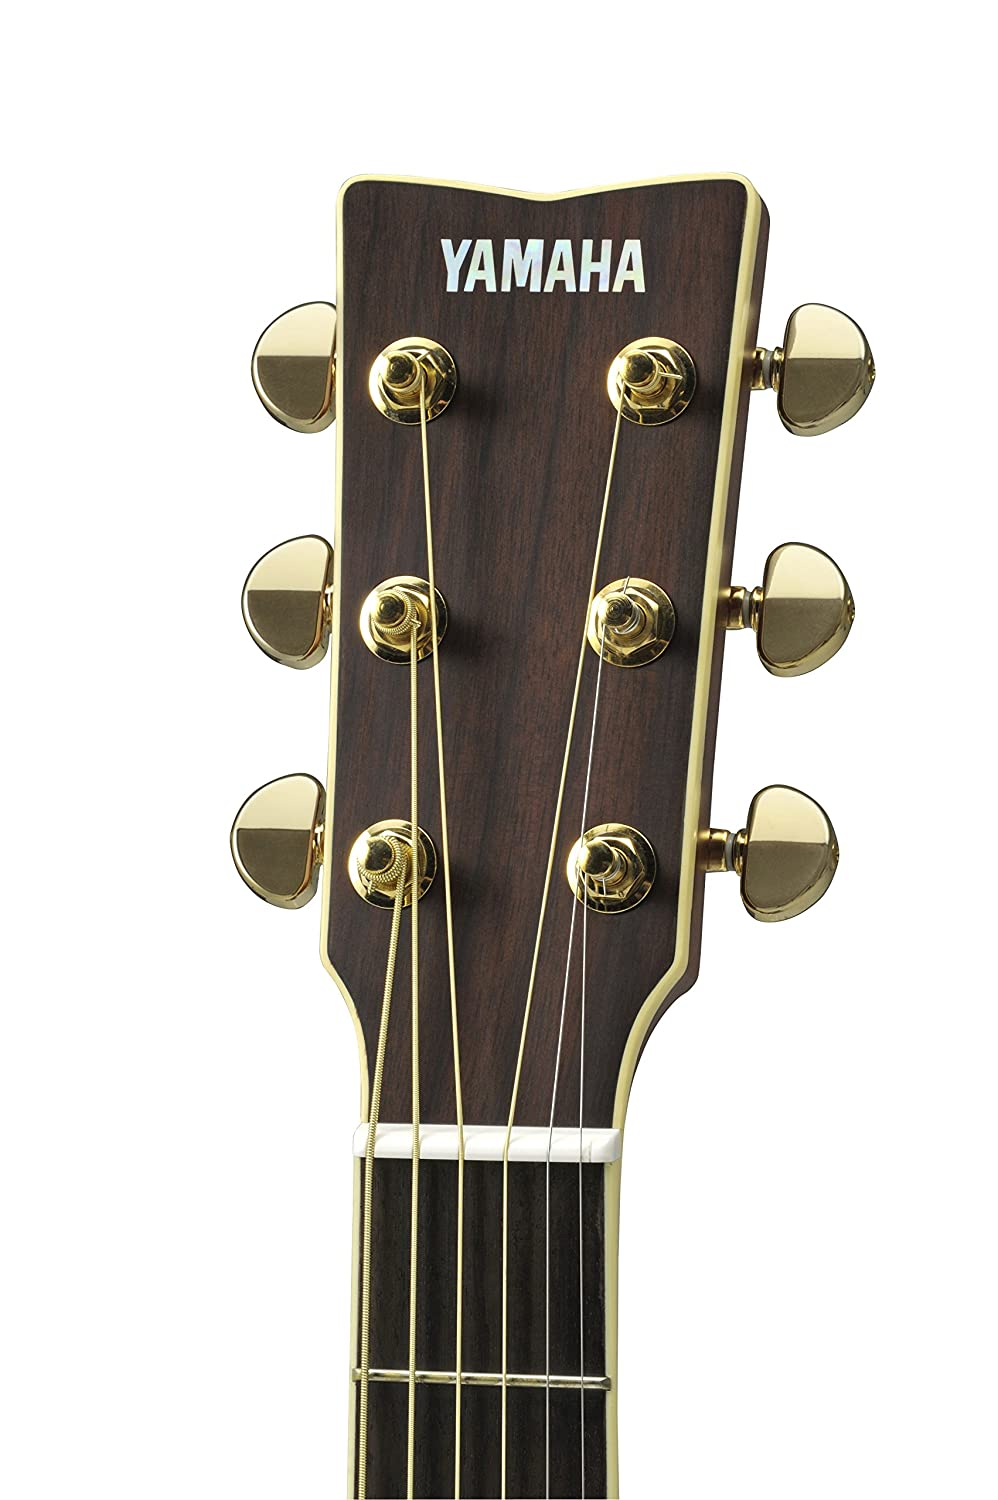 Yamaha L Series Ls6 Concert Size Acoustic Electric Taylor Guitar Wiring Diagram Rosewood Natural Musical Instruments